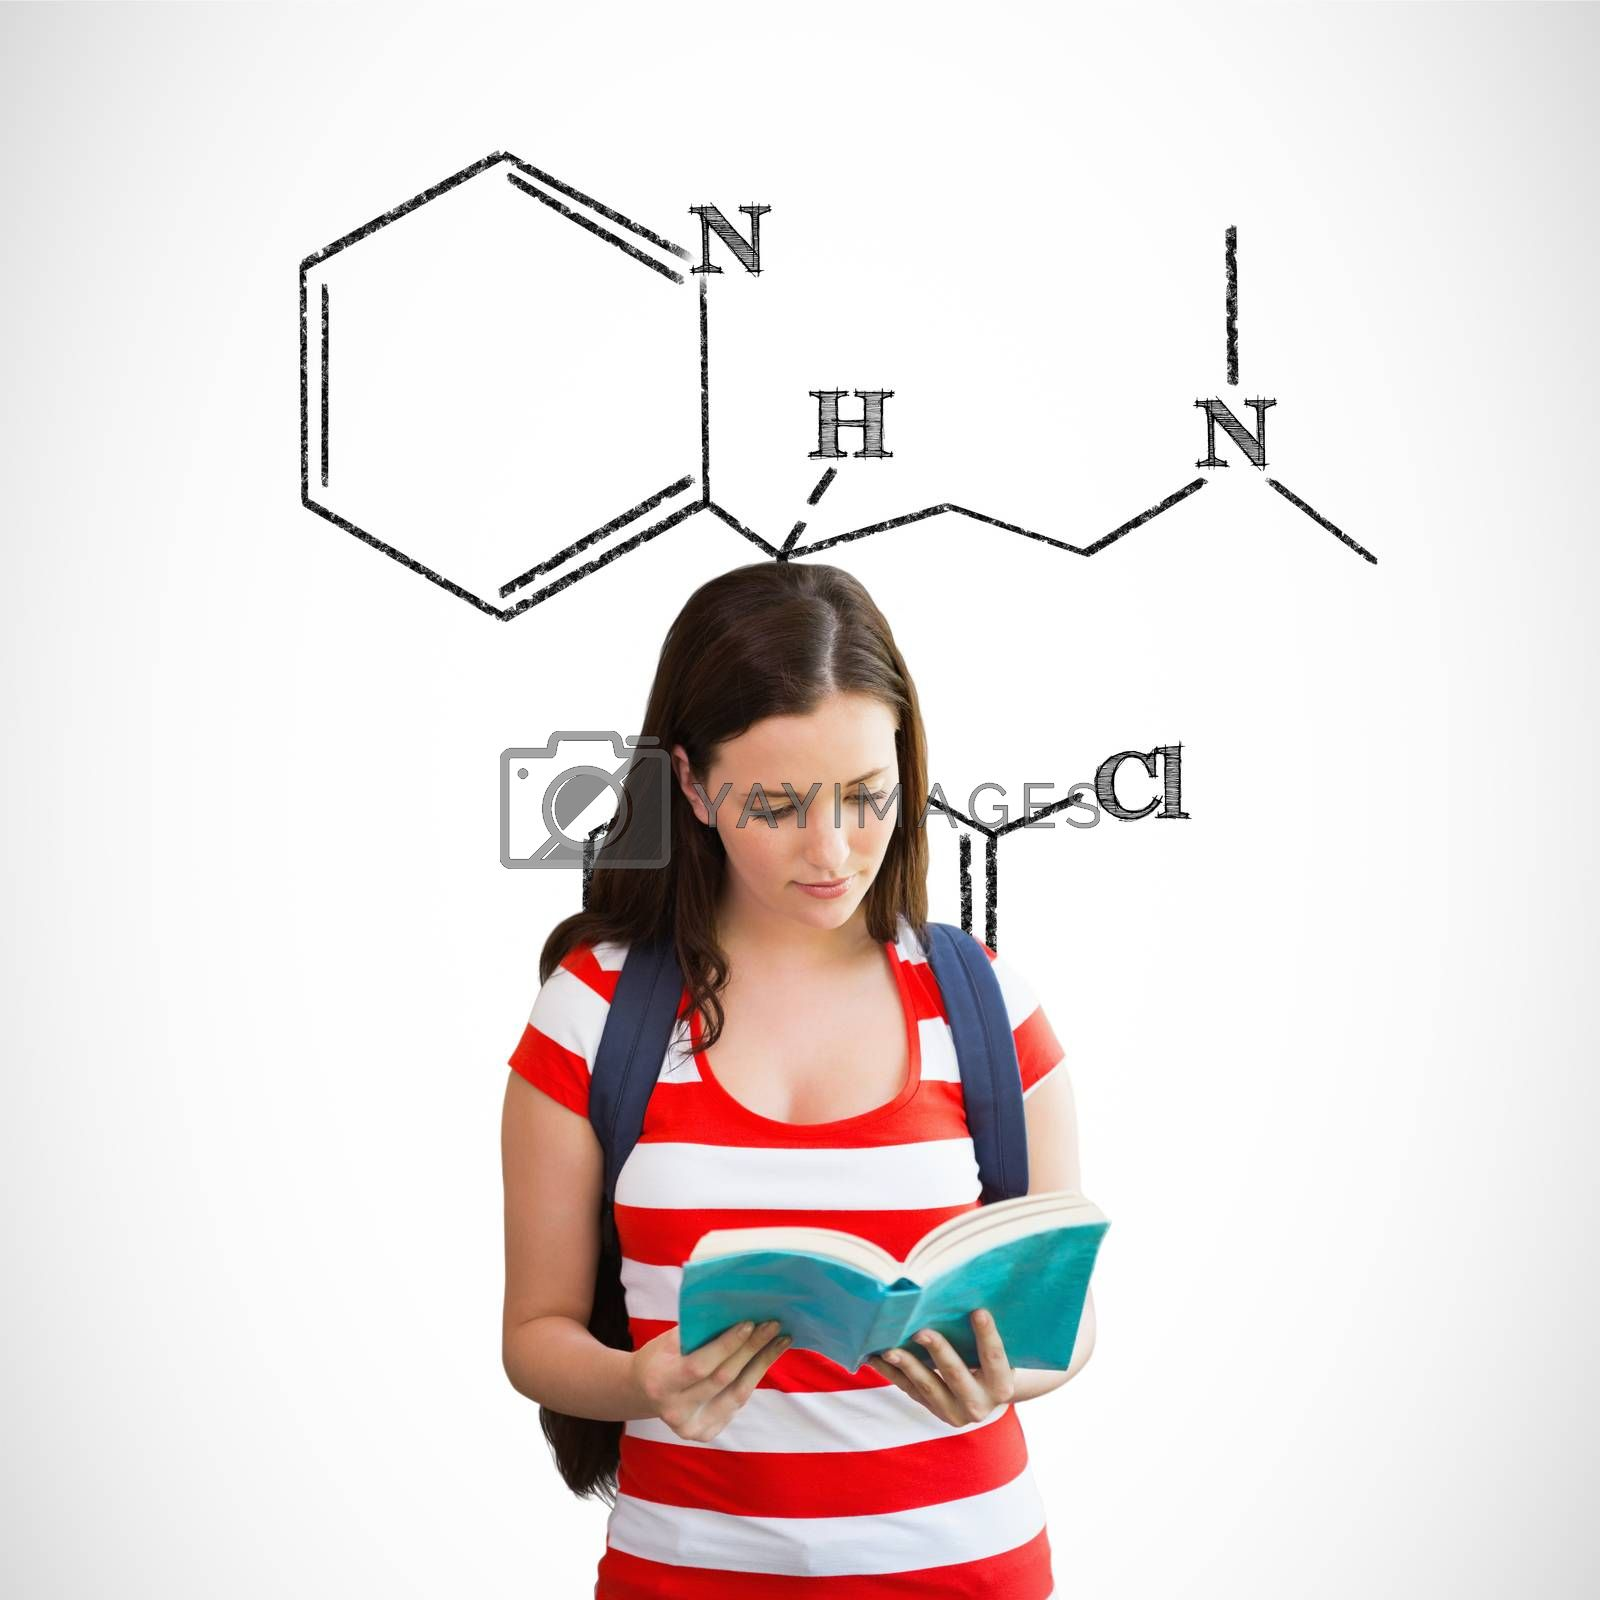 Composite image of student reading book in library by Wavebreakmedia